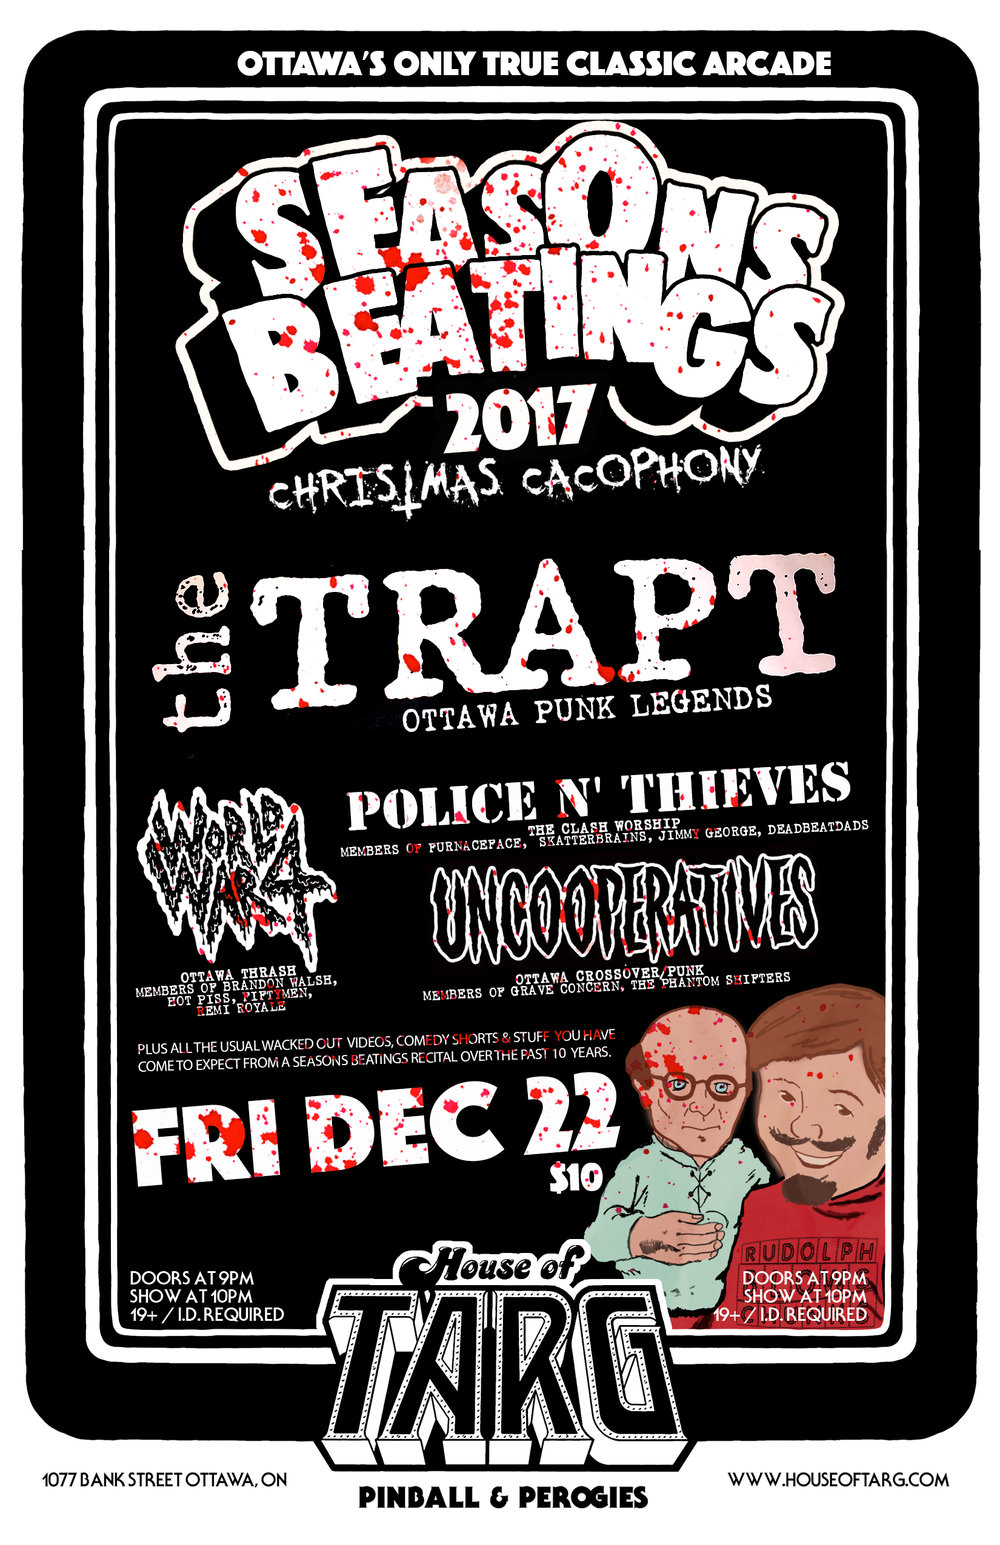 Fri Dec 22 SEASONS BEATINGS Nite 1:  Christmas Cacophony   An evening of Punk & Metal featuring the reunion of Ottawa Punk Legends THE TRAPT. Party like it's 1986  more details here